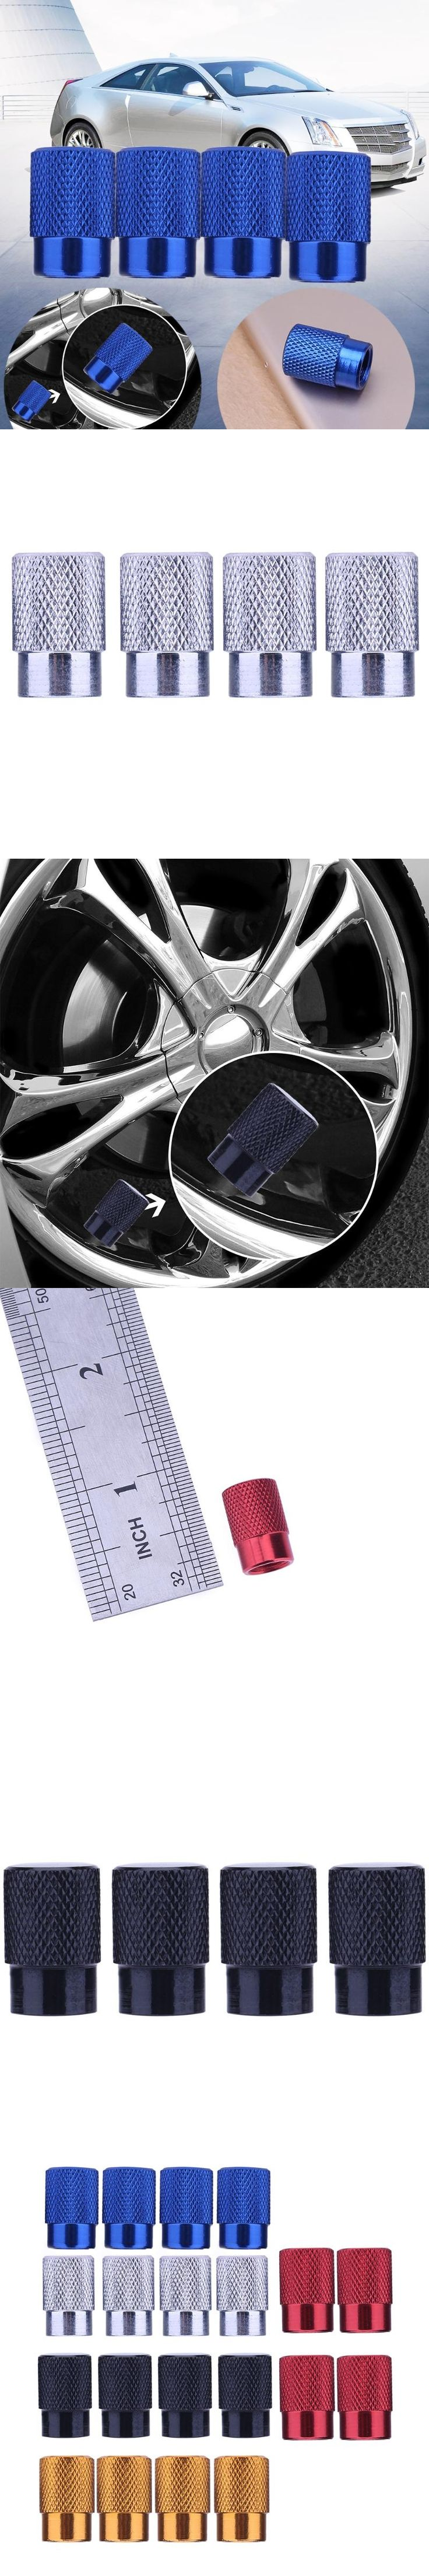 VODOOL 4pcs/set Universal Auto Bicycle Tire Valve Caps Dust Covers for Schrader Valve Aluminum Car Styling Accessories